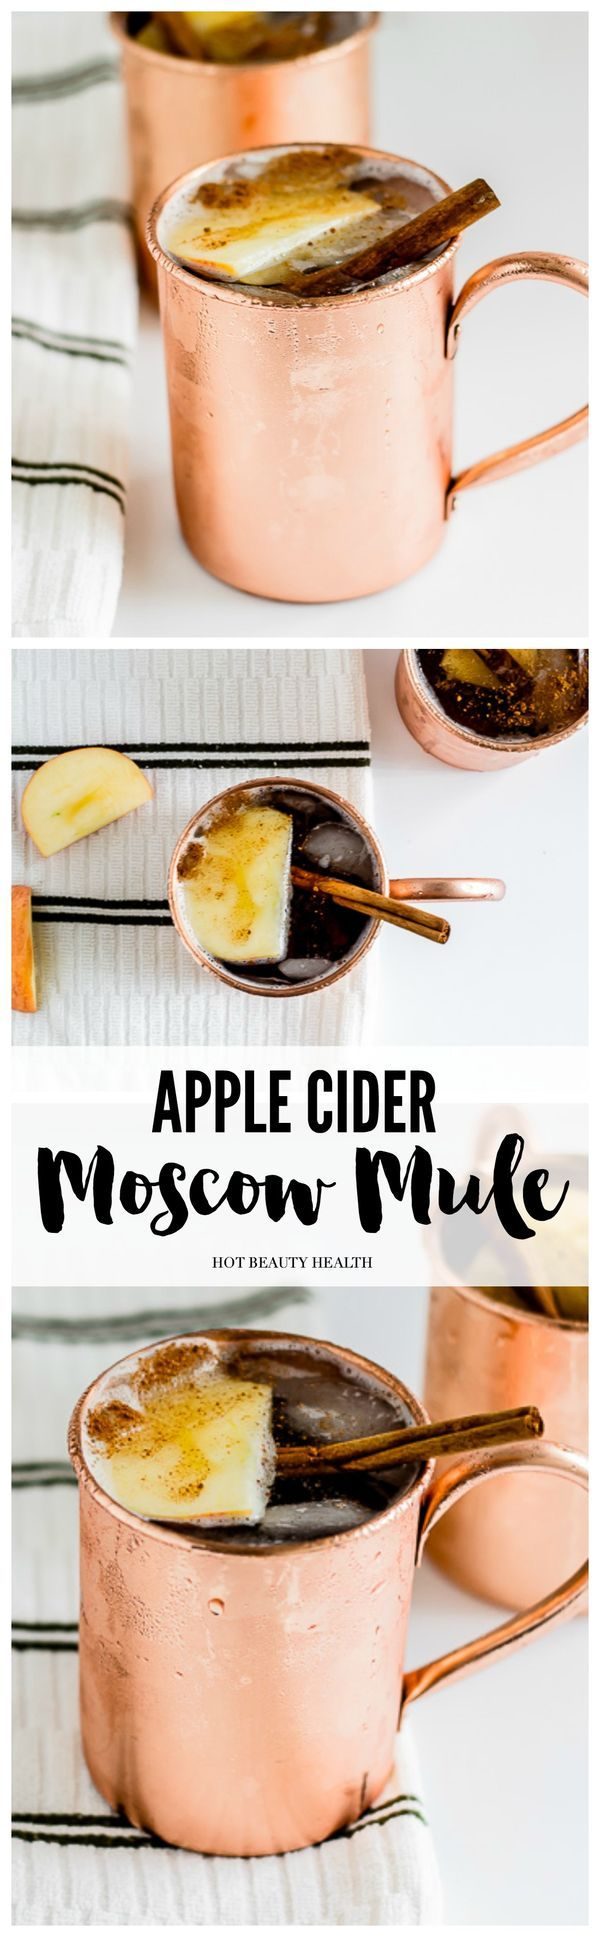 The addition of apple cider pairs perfectly with the ginger beer while the cinnamon adds a lovely fall aroma and flavor to the drink. Try this delightful drink on a cool fall evening with friends and family.